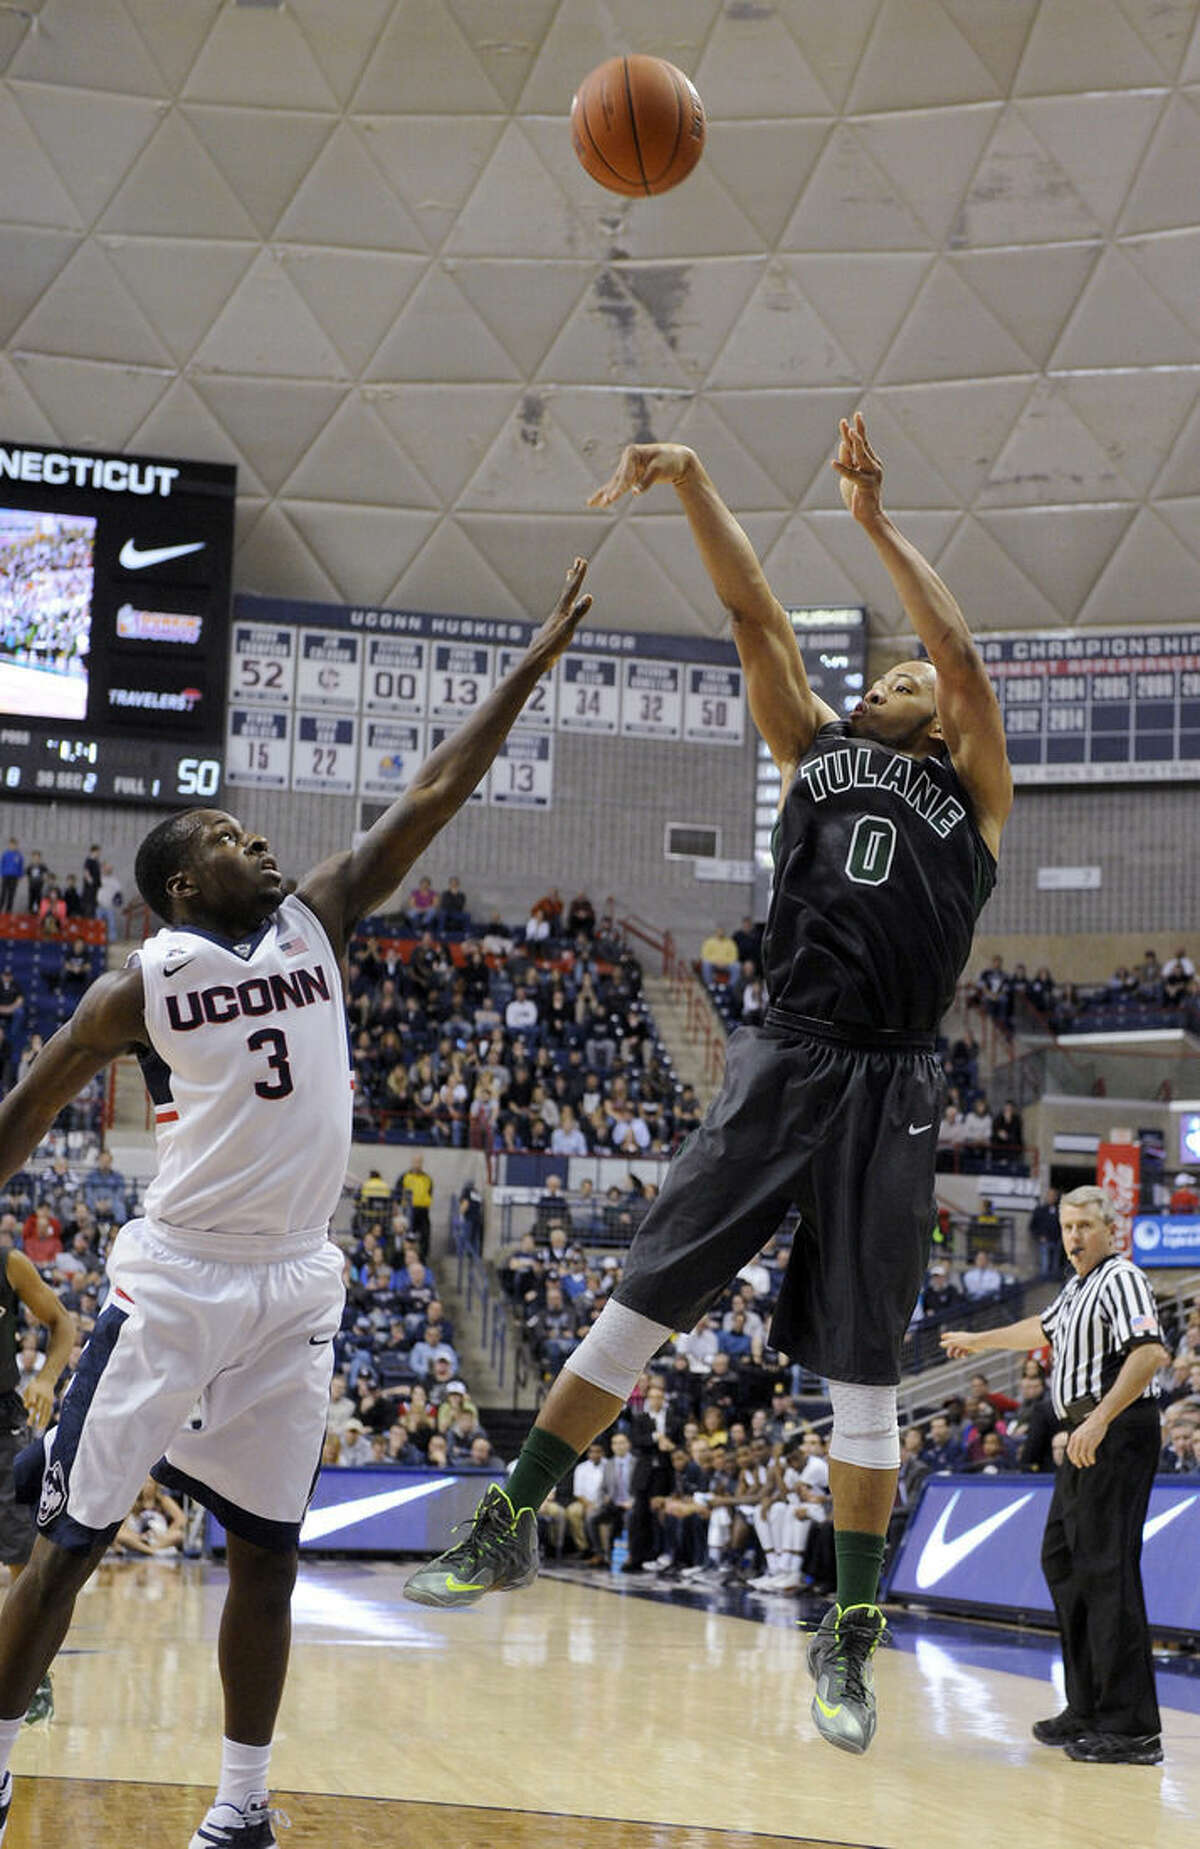 Tulane's Louis Dabney (0) shoots over Connecticut's Terrence Samuel (3) during the second half of Connecticut's 67-60 victory in an NCAA college basketball game in Storrs, Conn., on Sunday, Feb. 22, 2015. Dabney scored a game-high 19 points in his team's loss. (AP Photo/Fred Beckham)